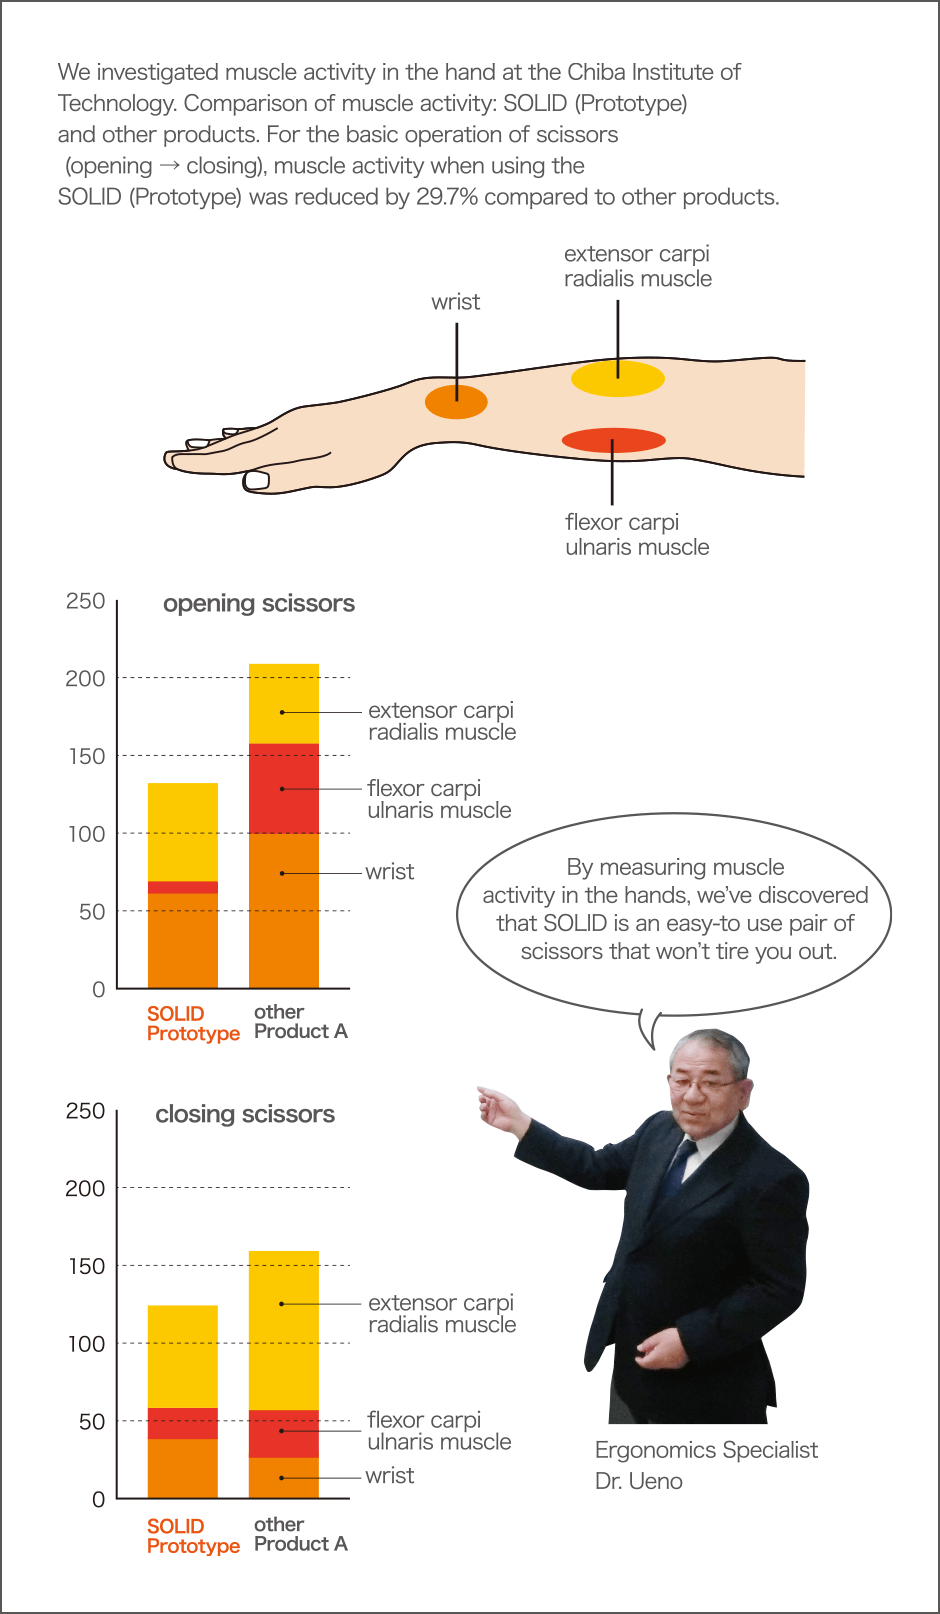 We investigated muscle activity in the hand at the Chiba Institute of Technology.